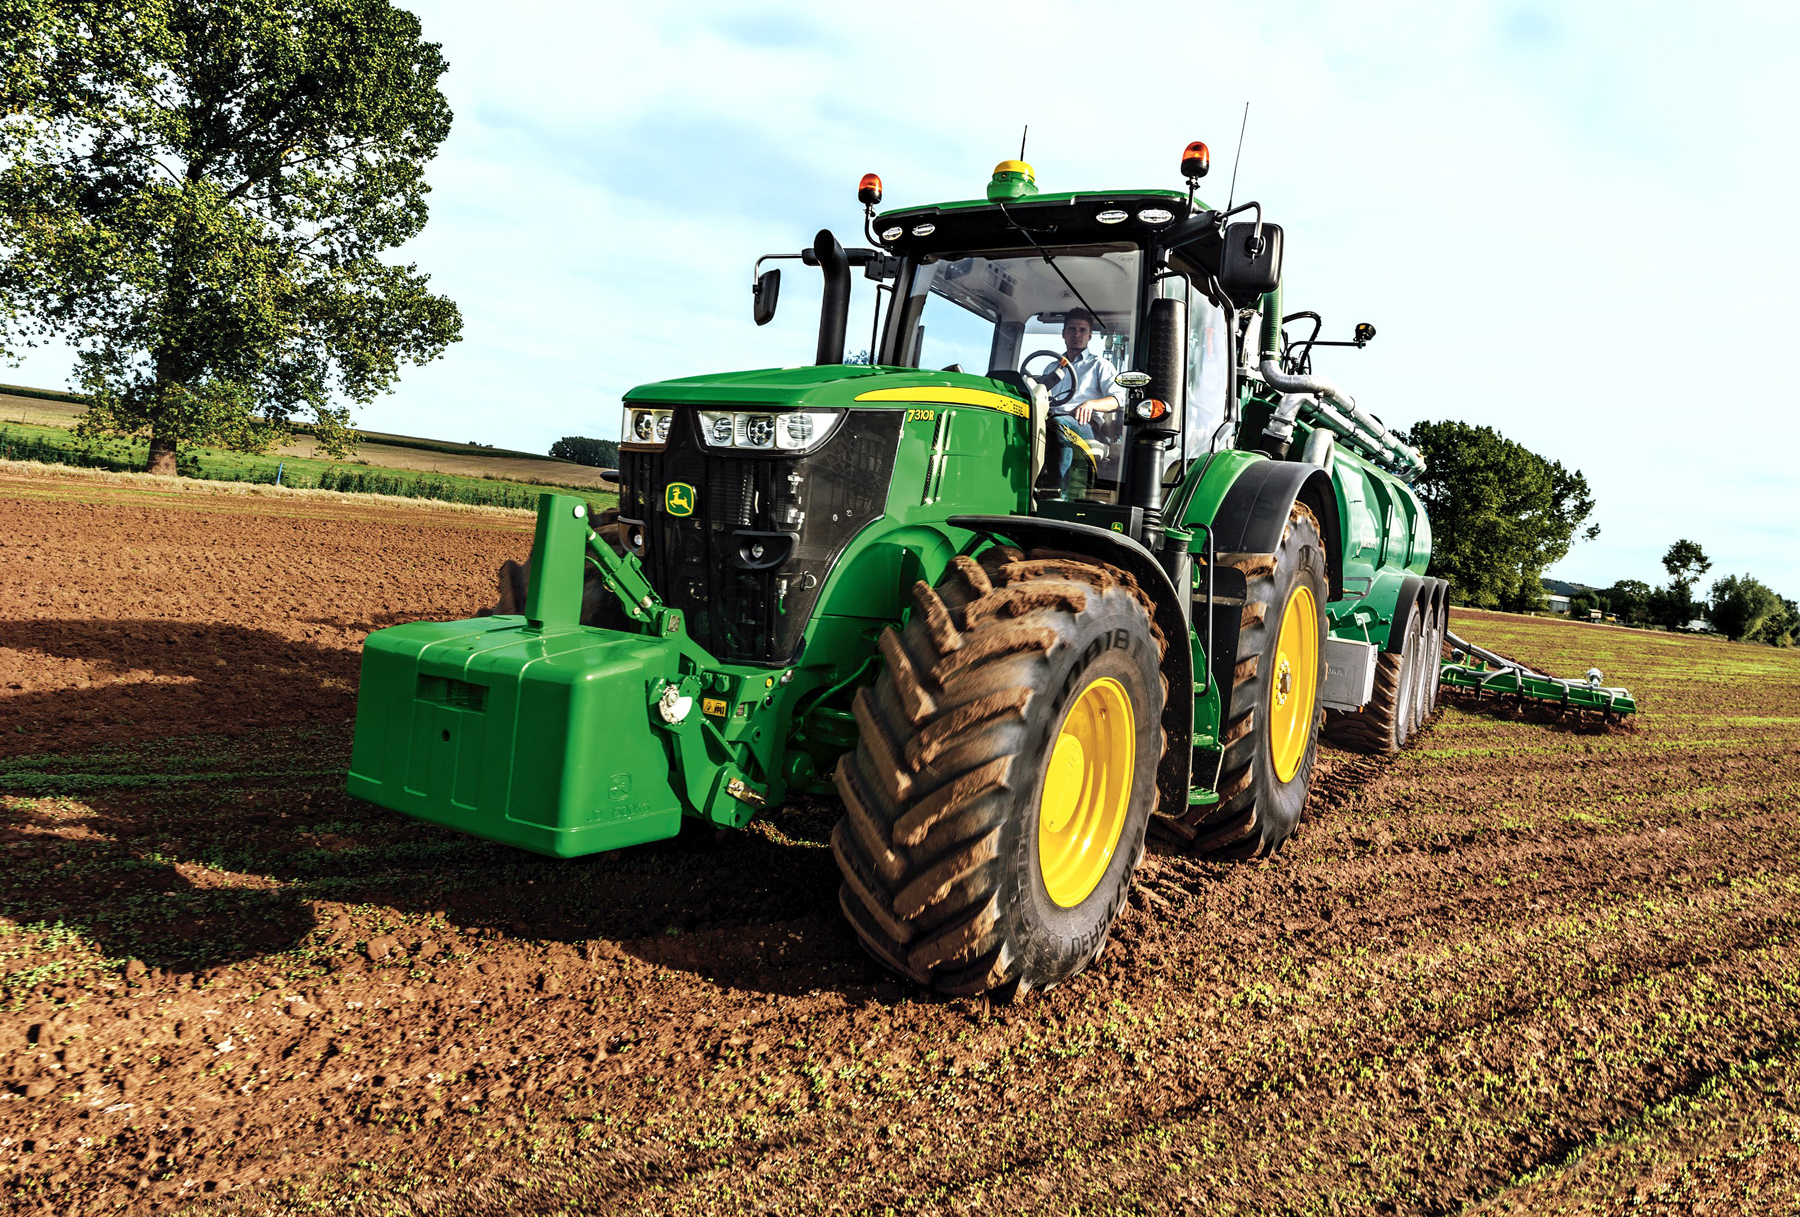 HRN Tractors is the main John Deere dealer in the north and north-east